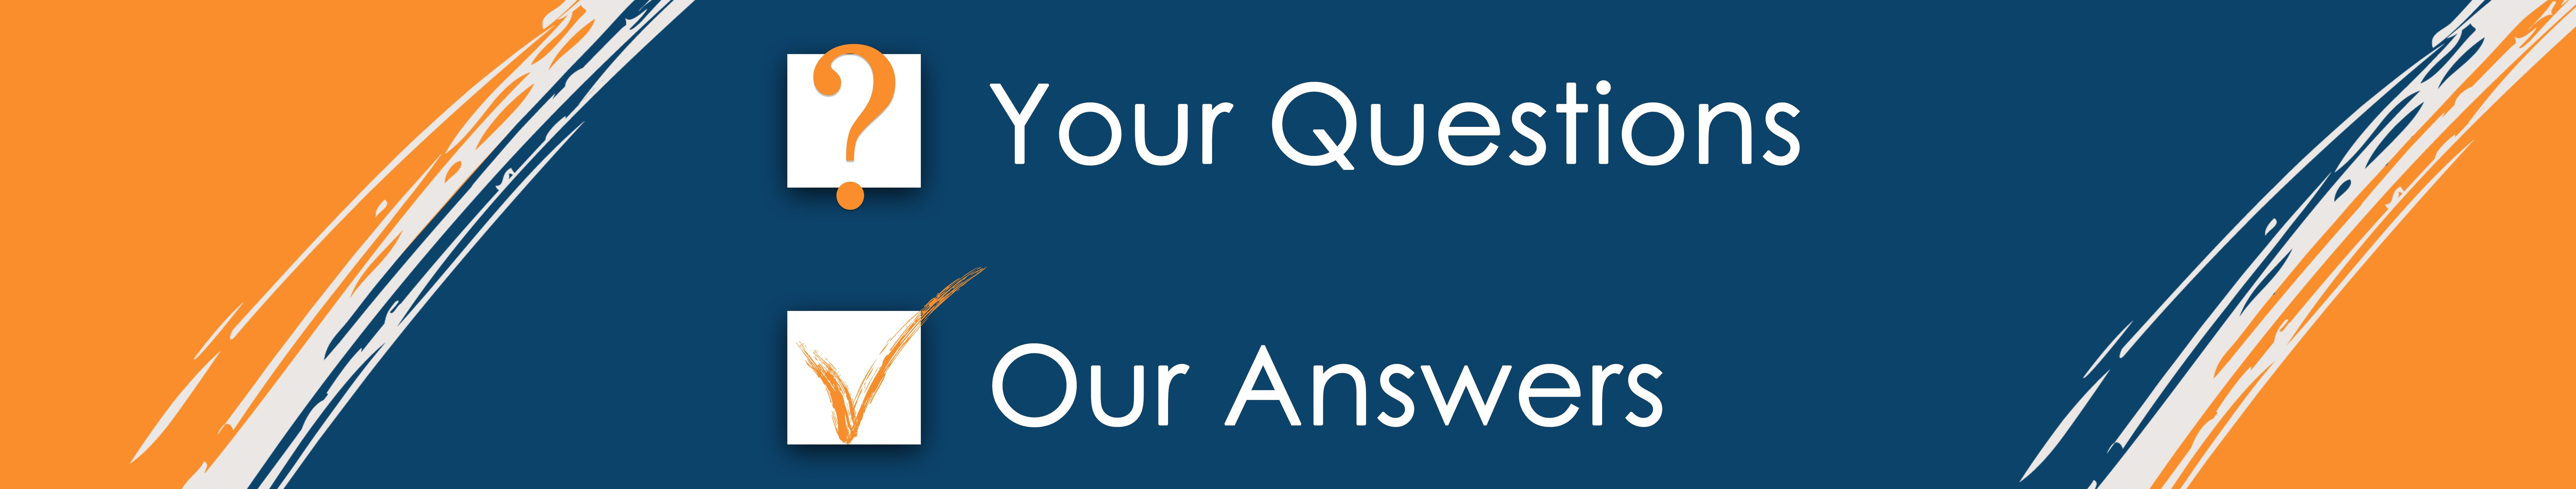 your questions, our answers banner (2)